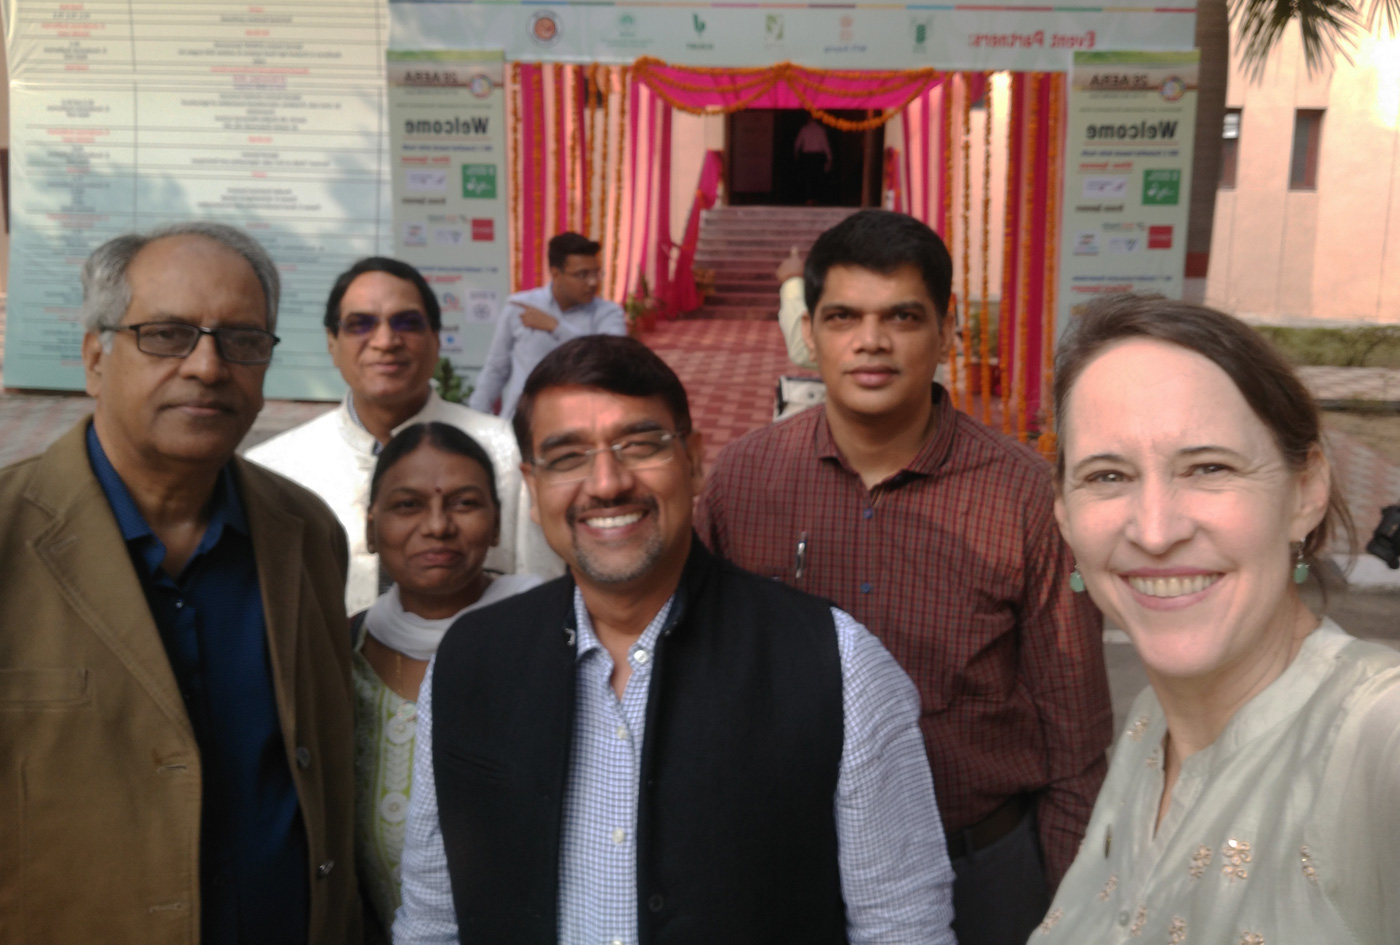 (L-R) Drs P Parthasarathy Rao, R Padmaja, Shalander Kumar, K Dakshina Murthy and Ms Joanna Kane-Potaka at the conference held in Karnal, Haryana. Photo: J Kane-Potaka, ICRISAT